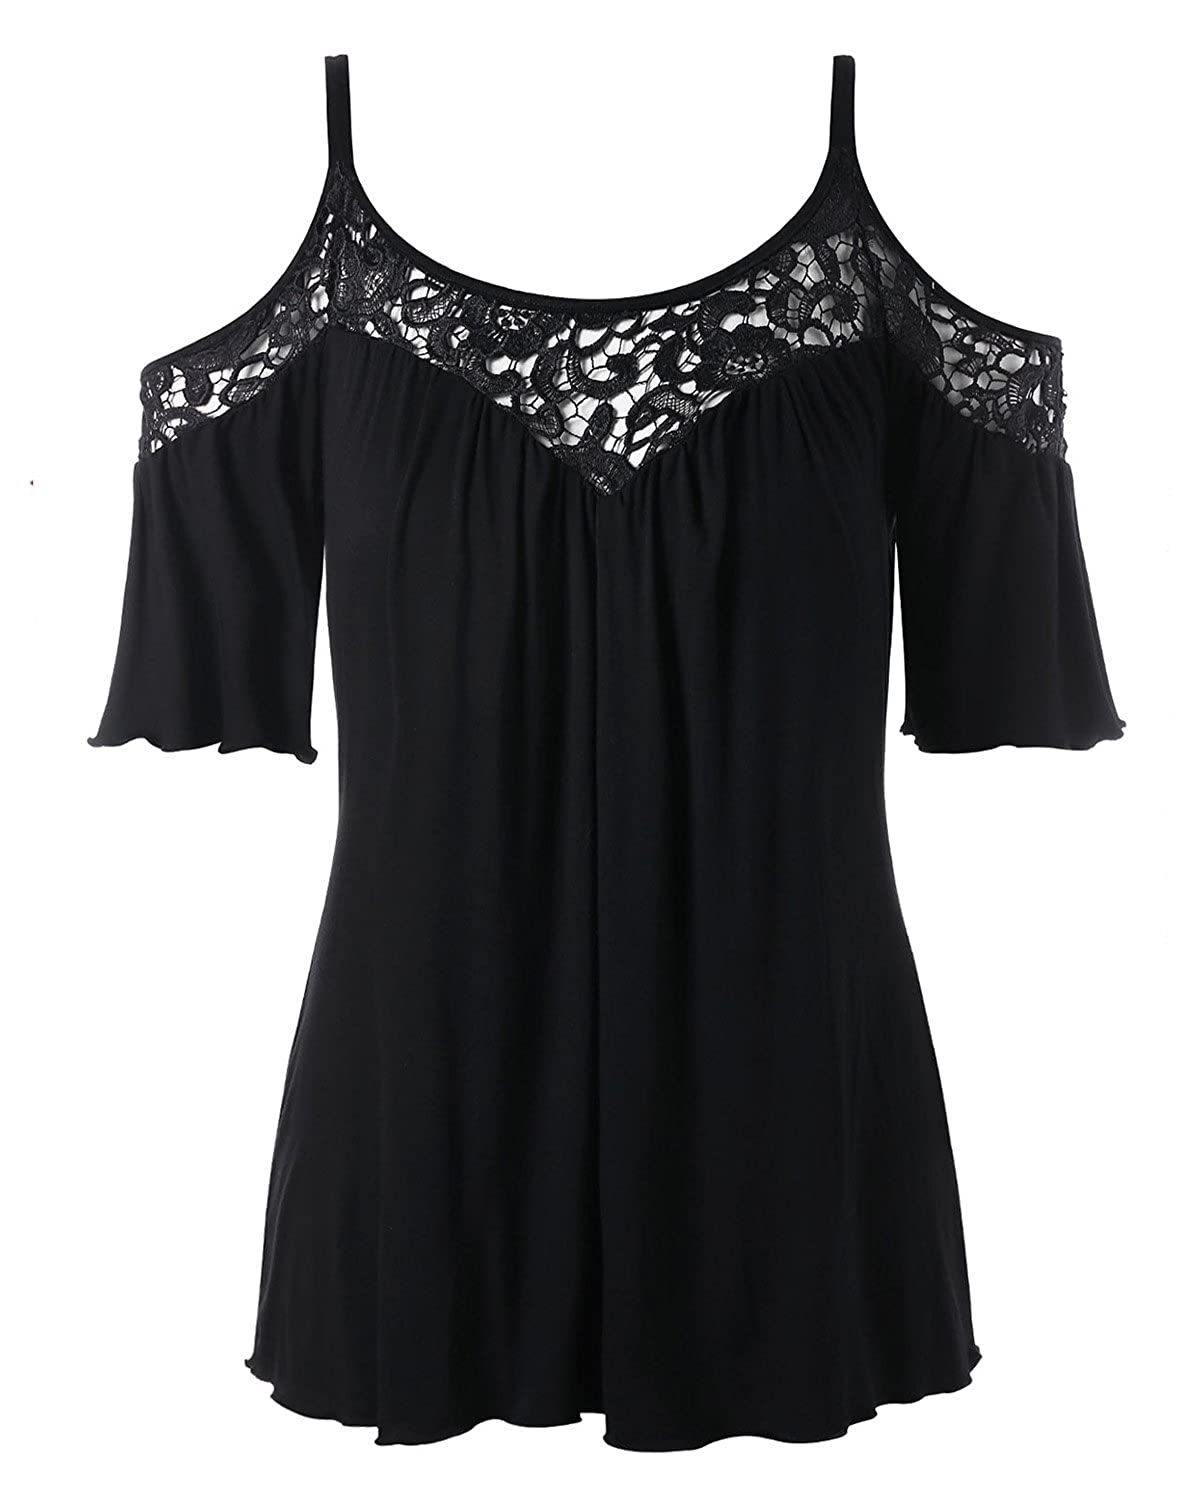 ZAFUL Womens Shirts Plus Size Lace Patchwork Tops Blouse Short Sleeve Tees  at Amazon Women s Clothing store  32f31aa71